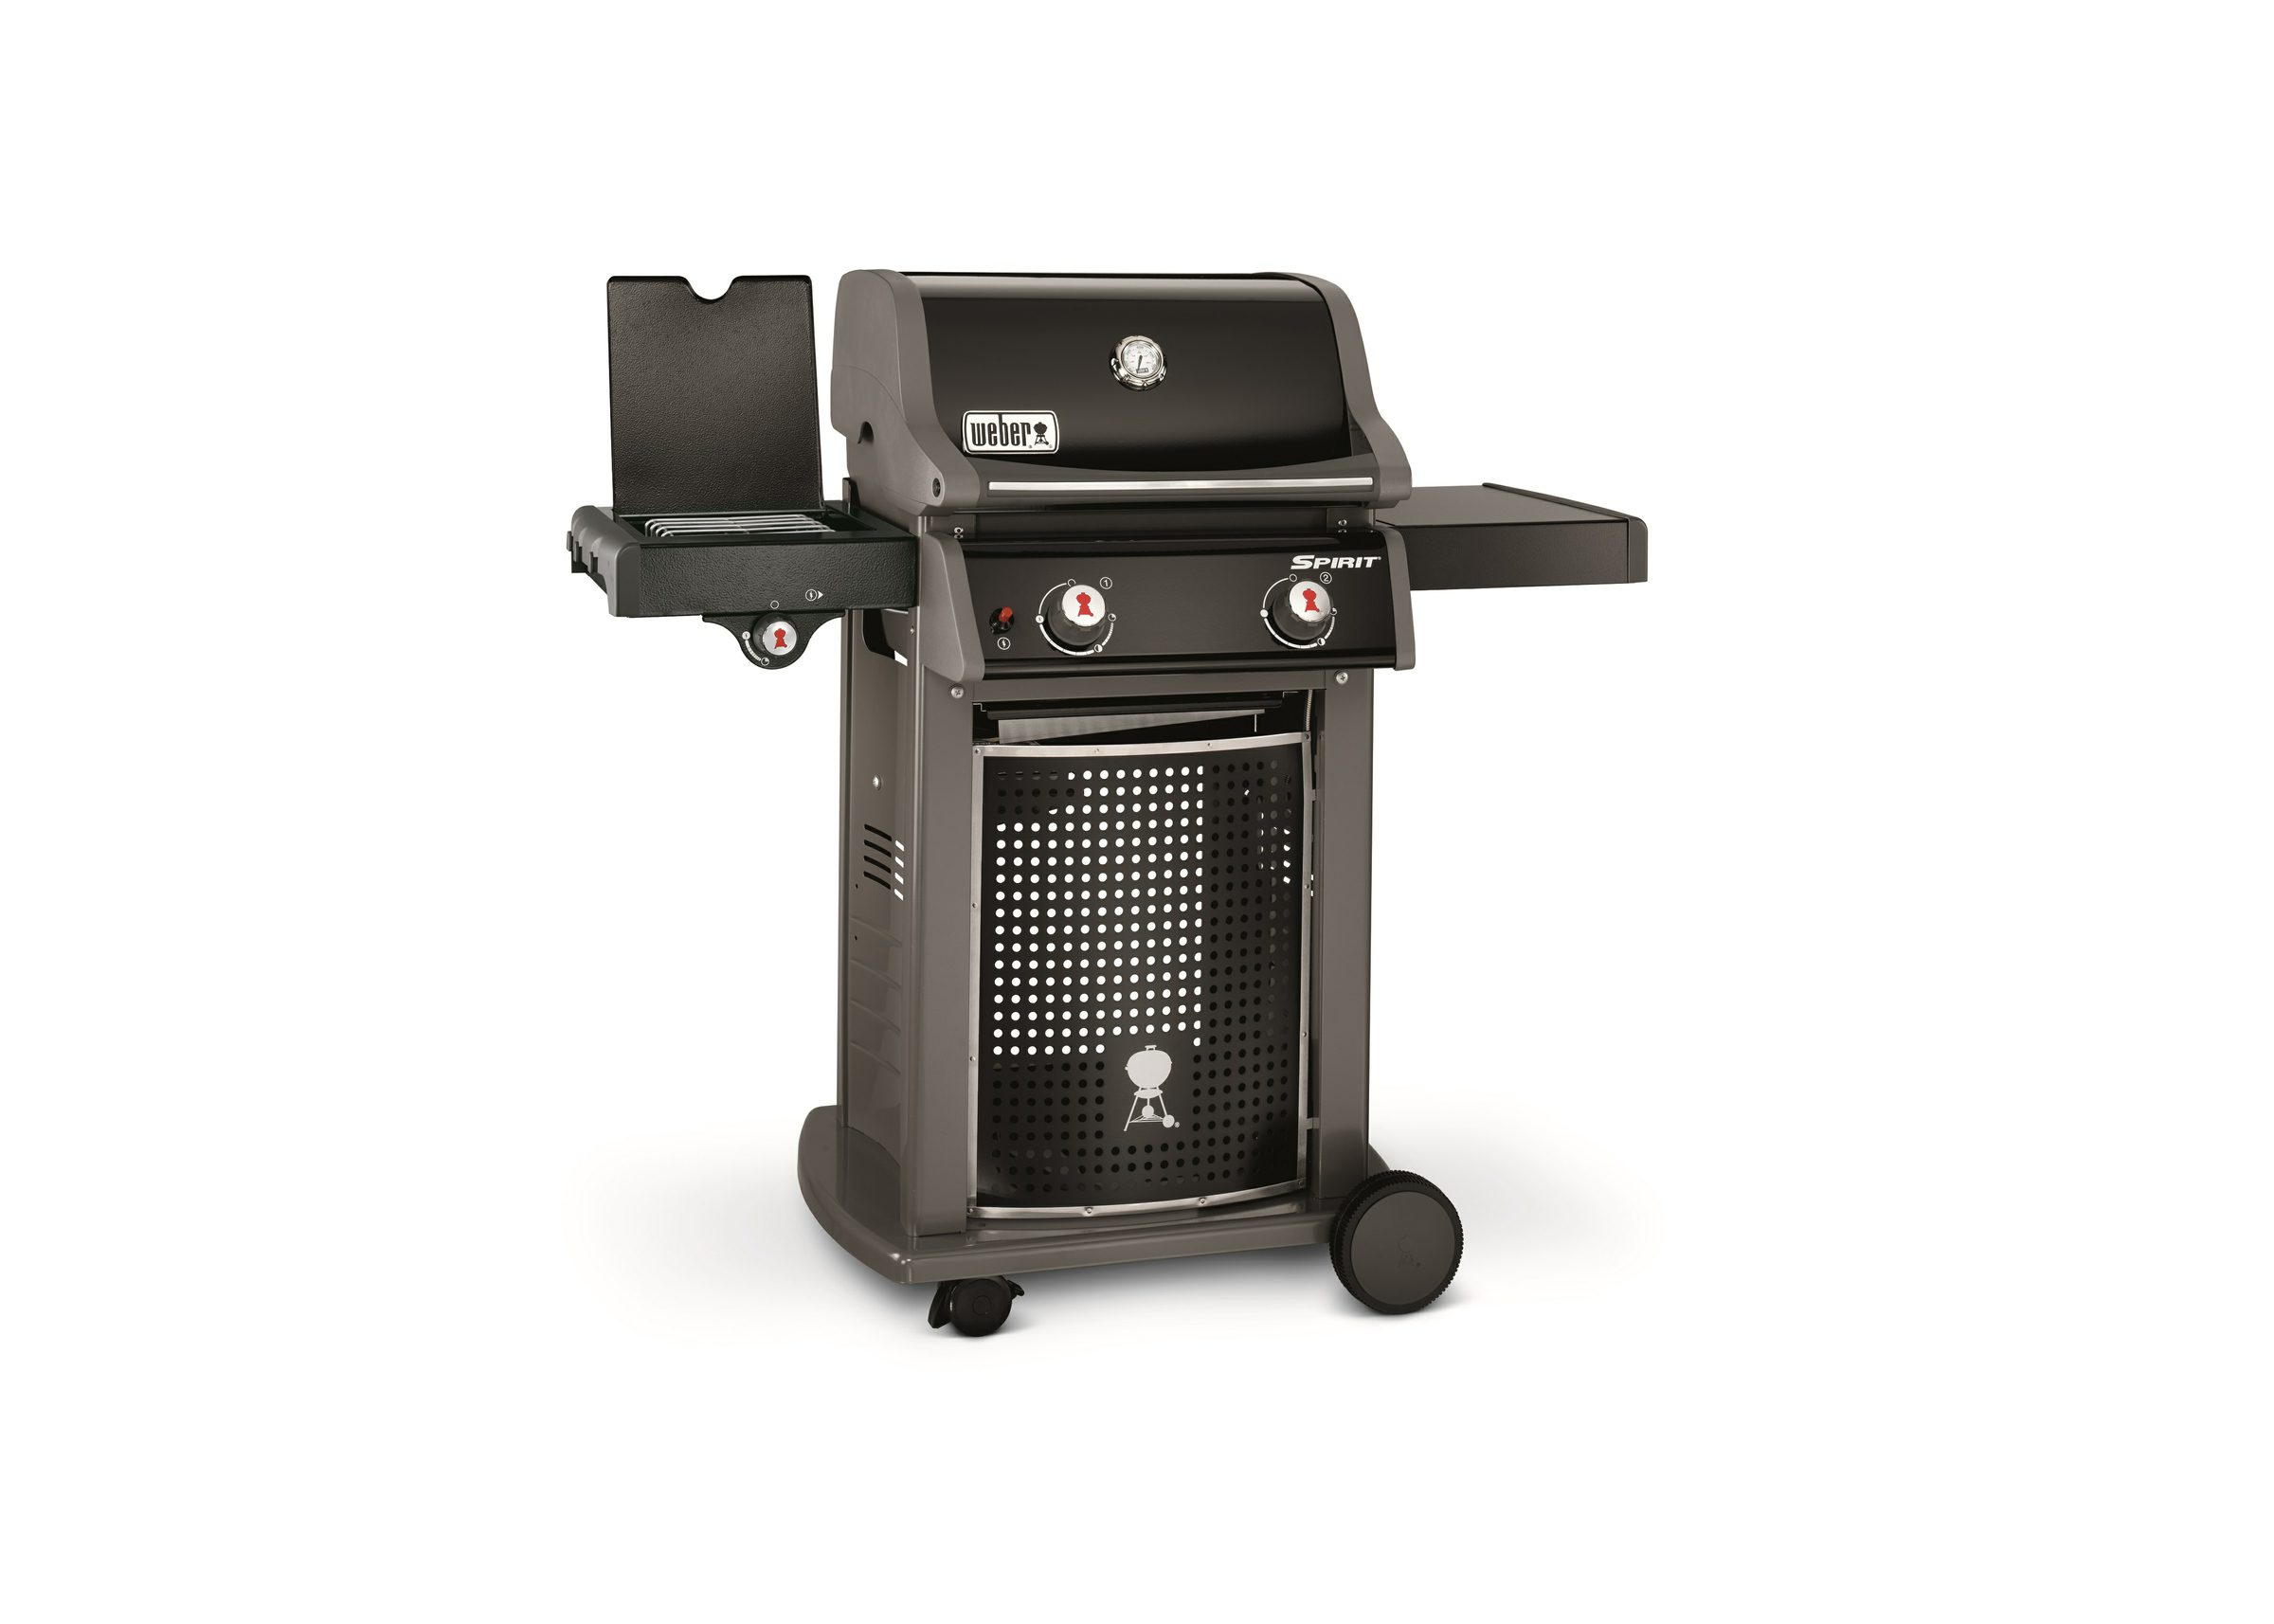 weber spirit e 210 original weber spirit original e 210 barbecue the barbecue store weber. Black Bedroom Furniture Sets. Home Design Ideas